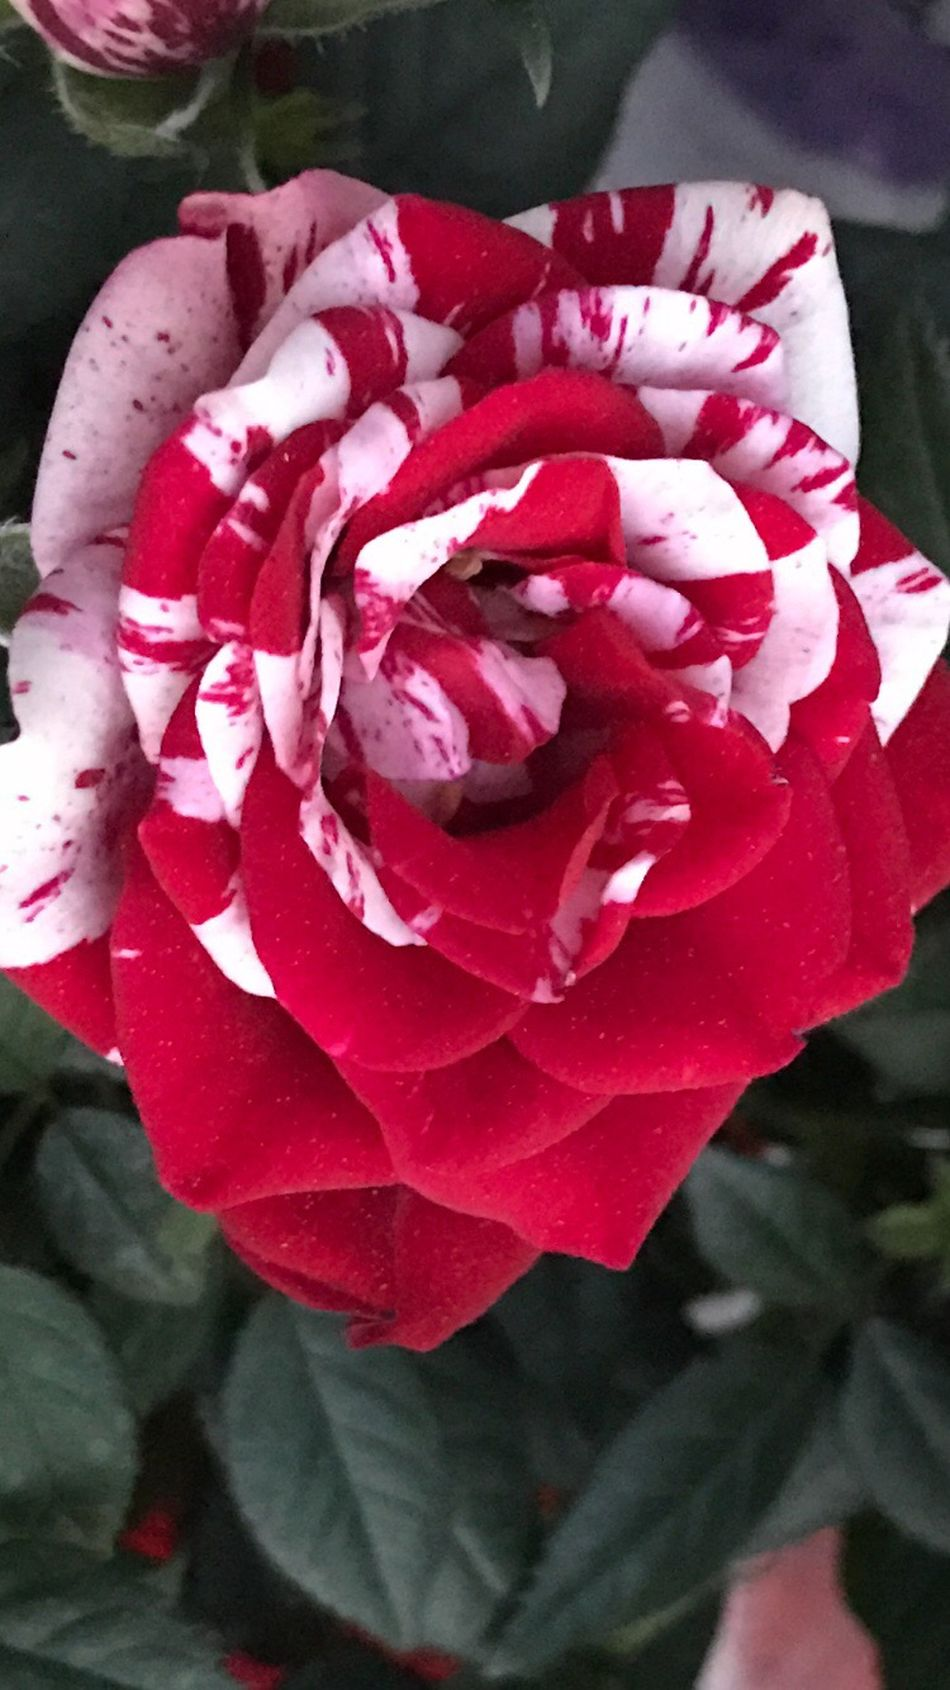 Flower Petal Nature Rose - Flower Fragility Beauty In Nature Flower Head Freshness No People Close-up Pink Color Plant Day Growth Rose Petals Outdoors Red Blooming Red Rose Blossom Freshness Photography Flowers Blooming Flowers My Garden @my Home Beauty Of Nature